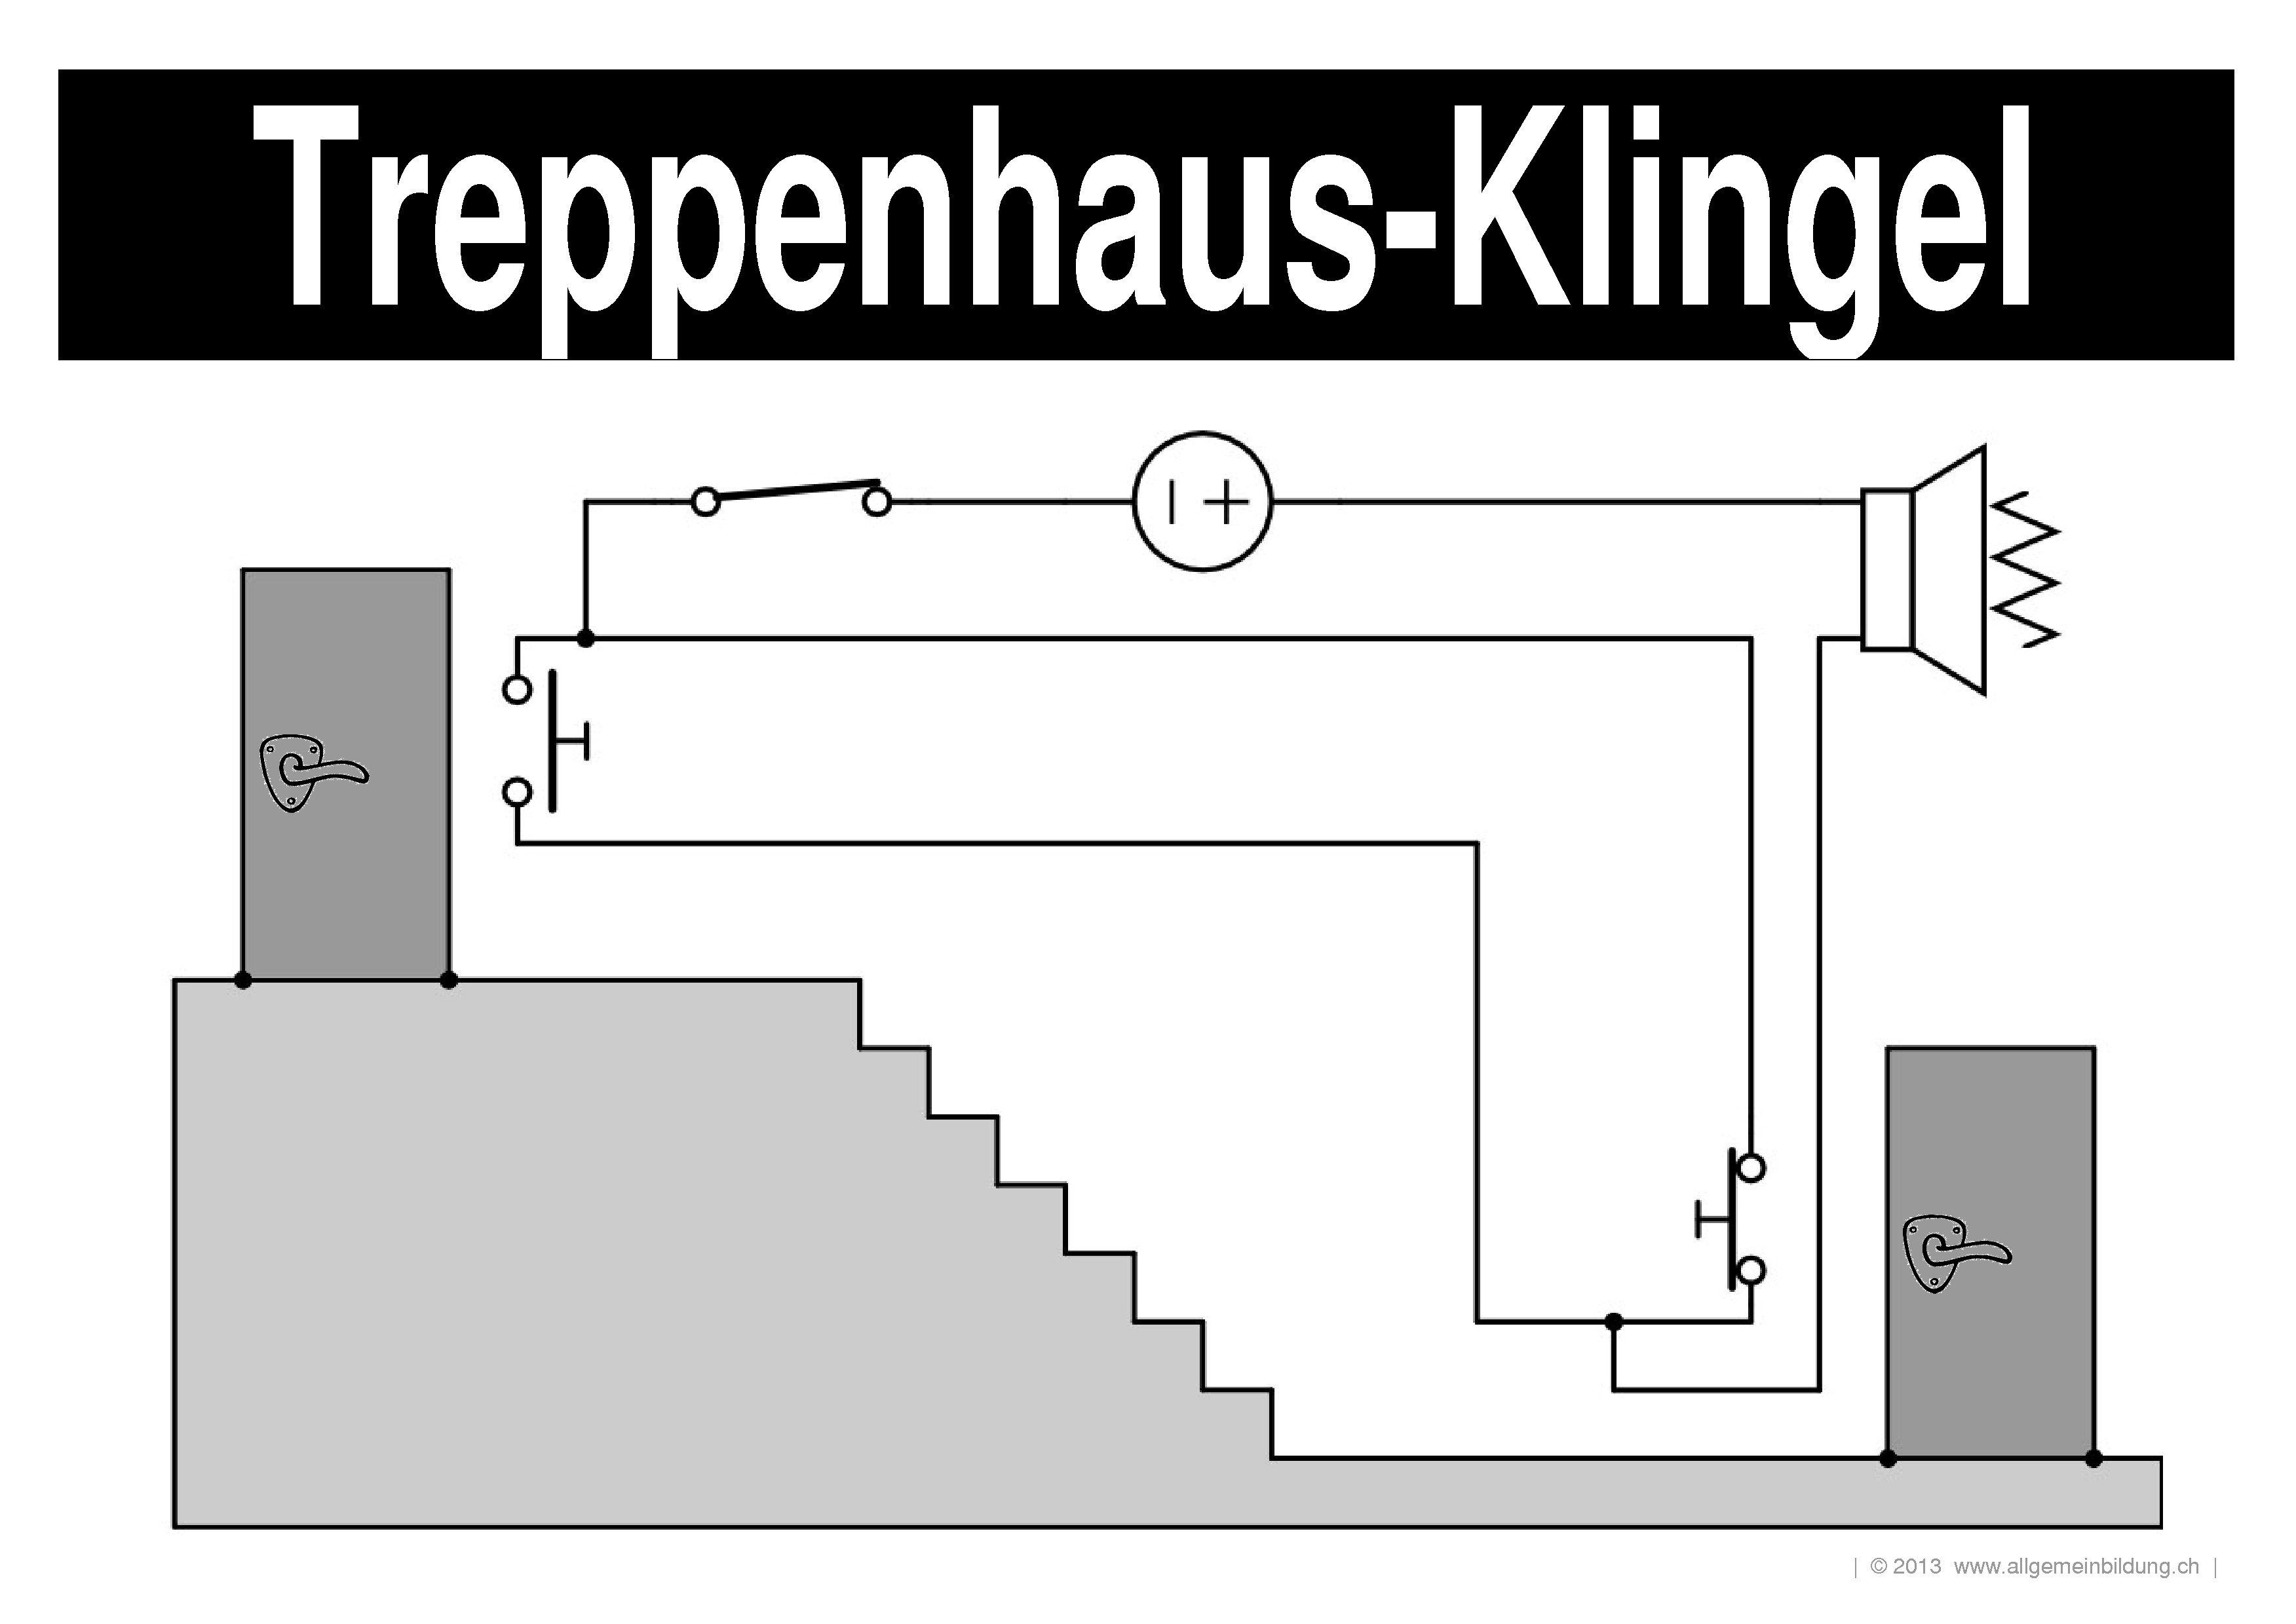 physik lernplakate wissensposter elektrische treppenhaus klingel real 8500 bungen. Black Bedroom Furniture Sets. Home Design Ideas